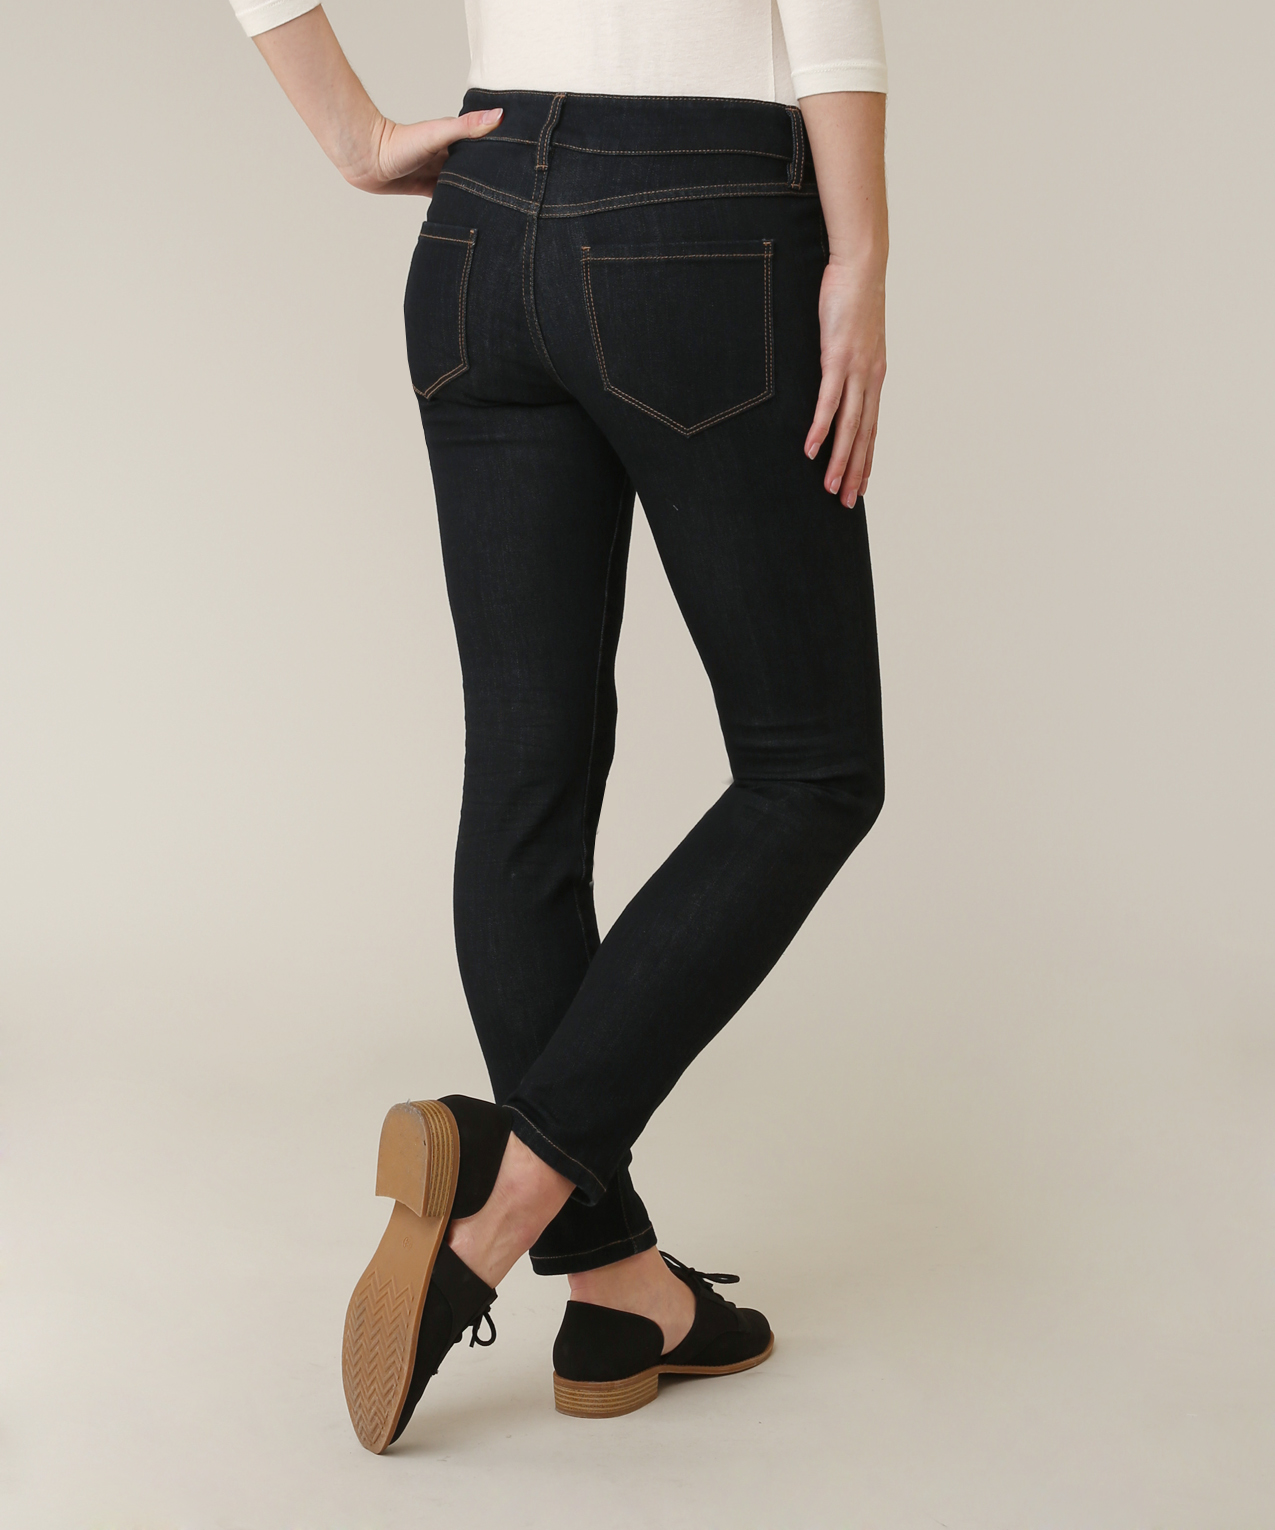 Shop Joe's Jeans for Women's Skinny Ankle Jeans with FREE Shipping & Returns on premium denim from qrqceh.tk